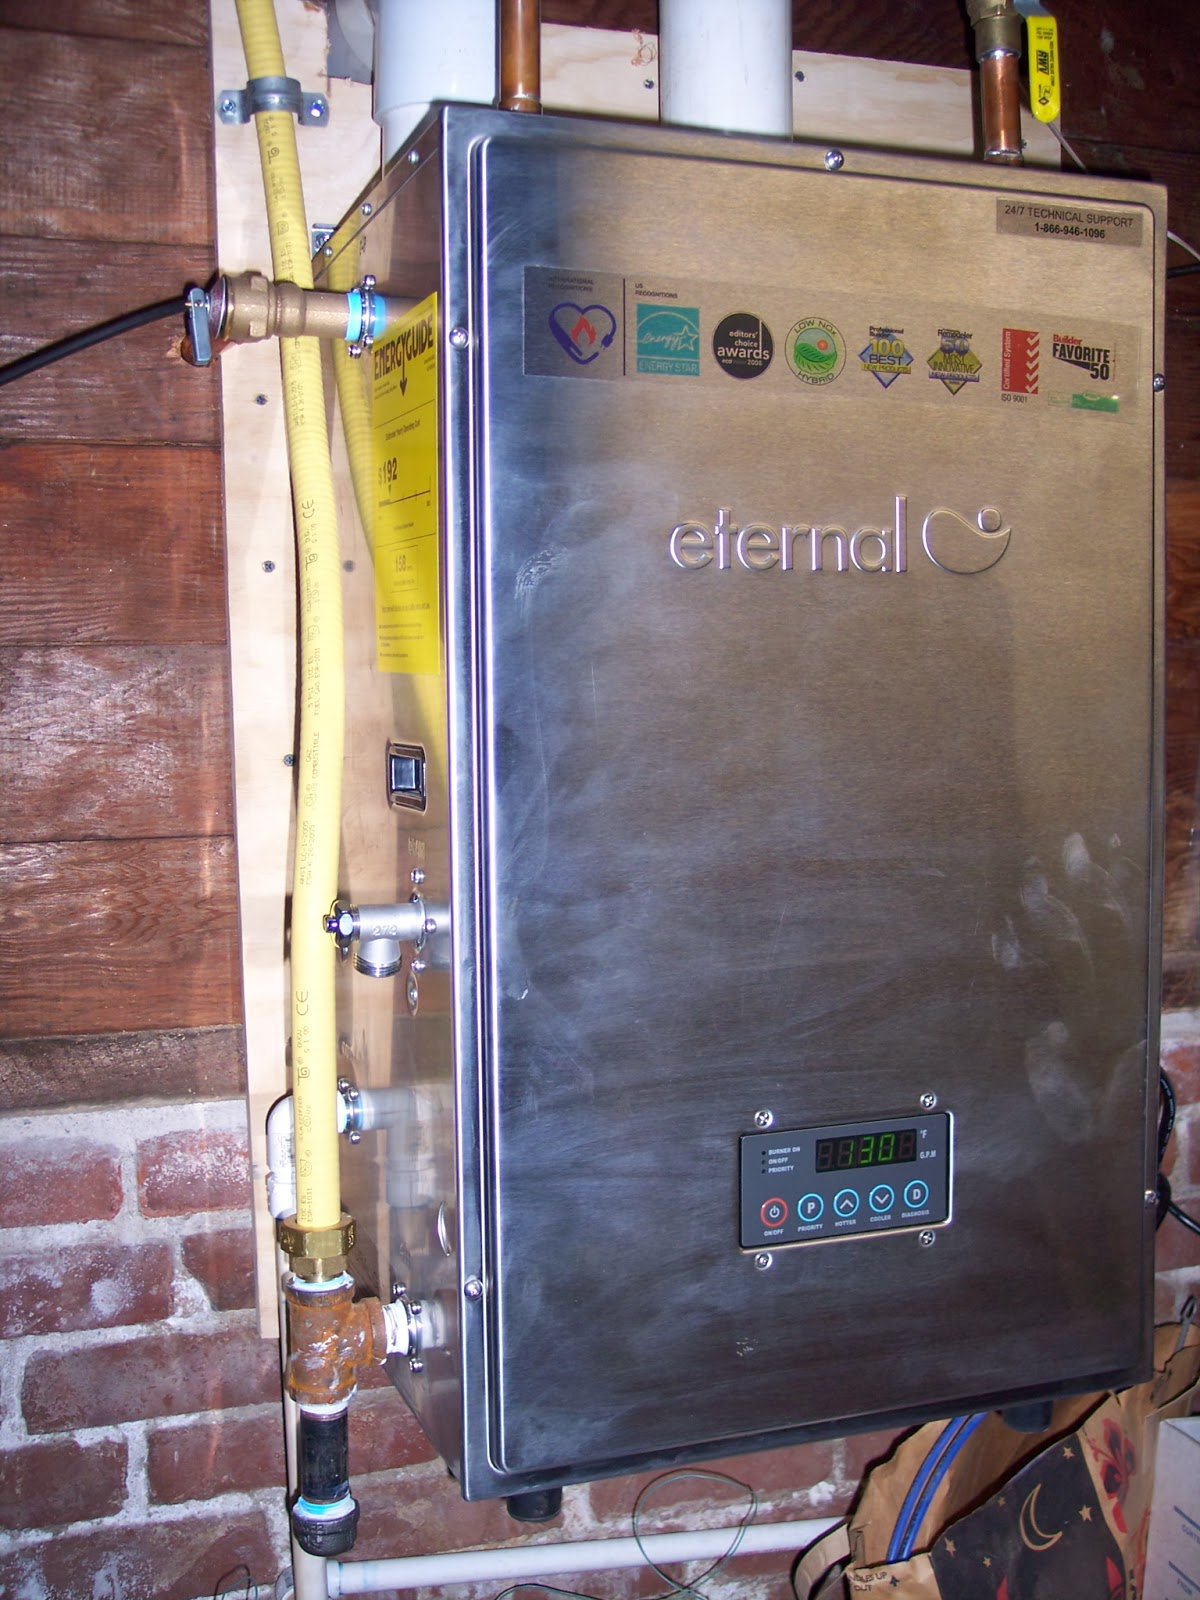 Recall Eternal Hybrid Tankless Water Heaters Care One